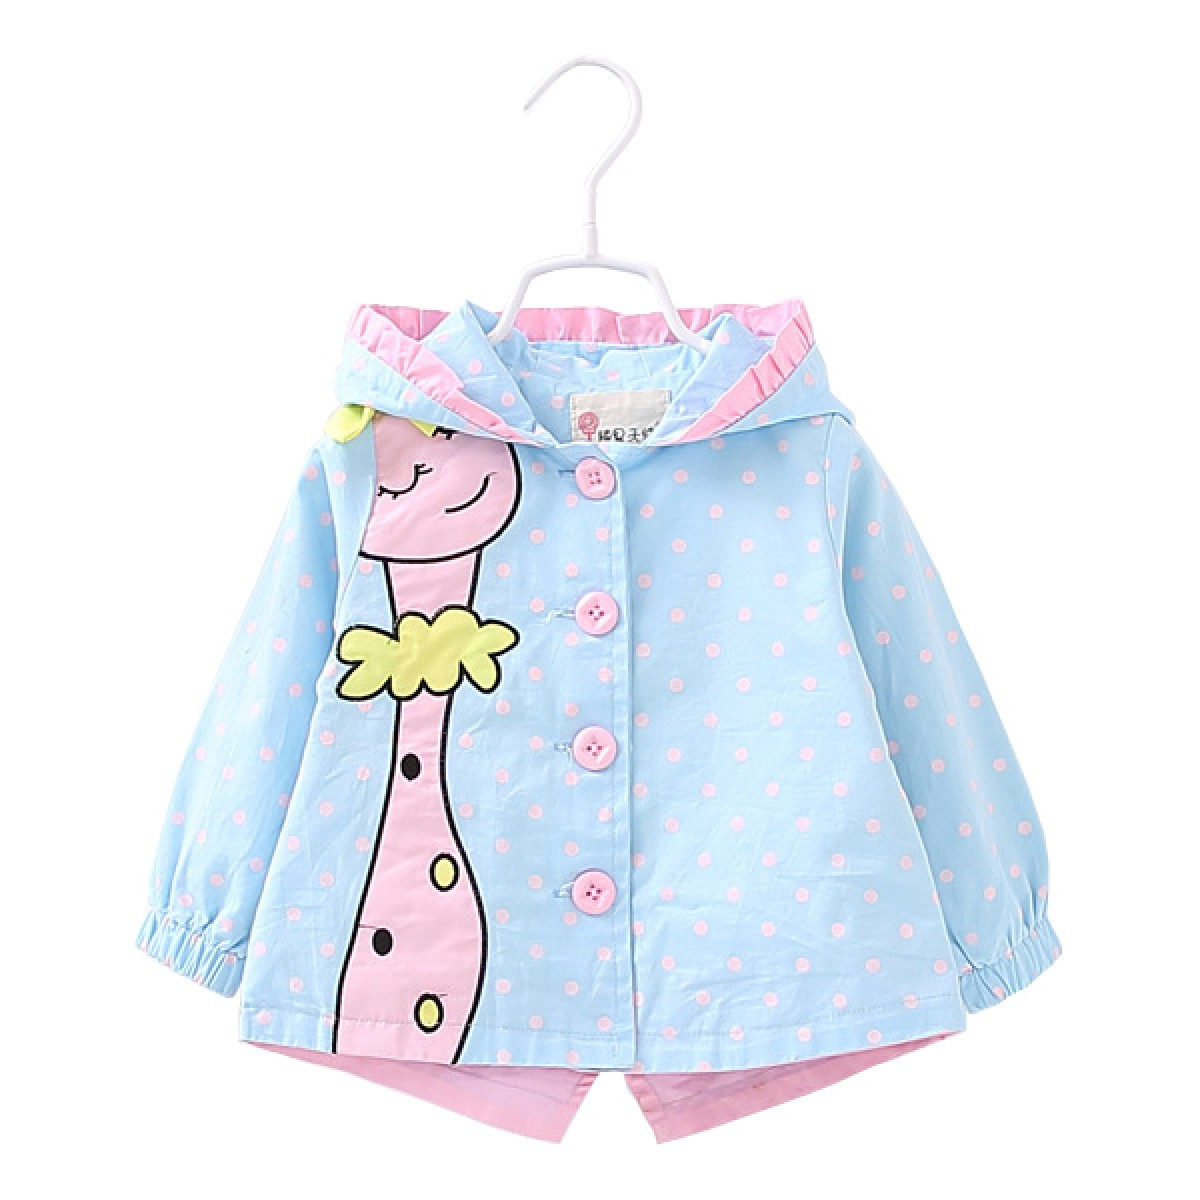 252254df4a6b Hooded cotton spring jacket for girls